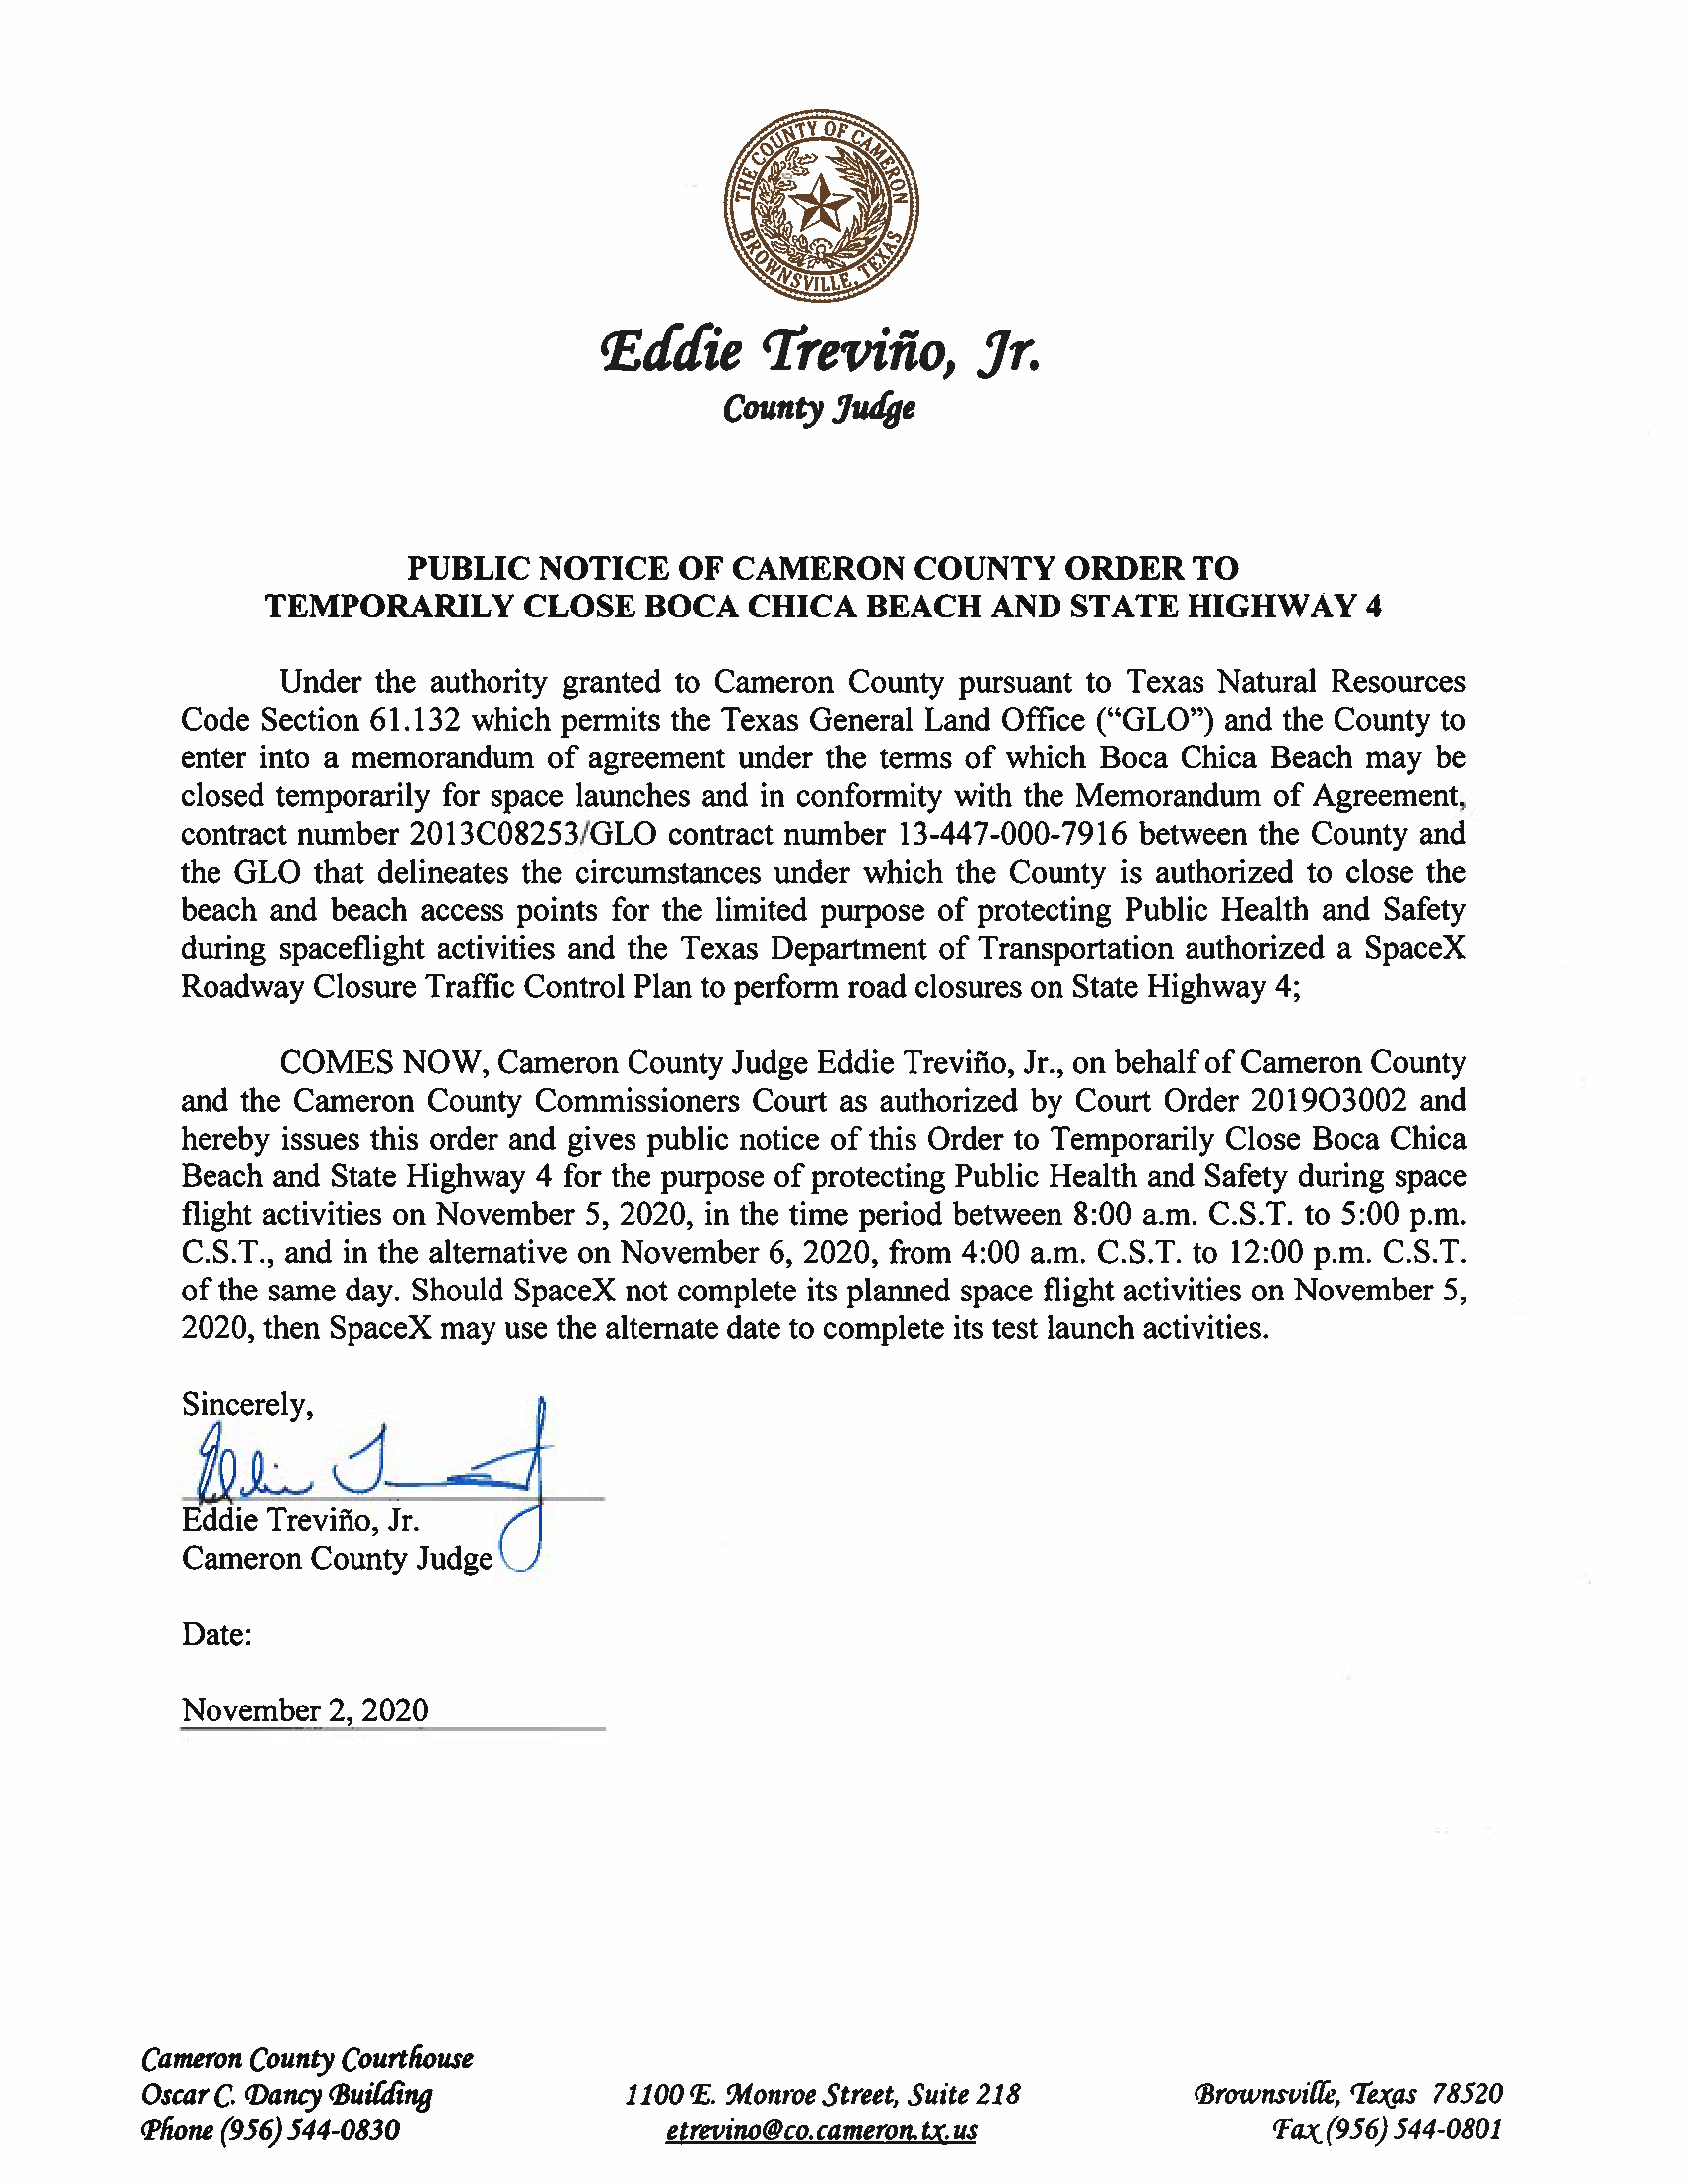 PUBLIC NOTICE OF CAMERON COUNTY ORDER TO TEMP. BEACH CLOSURE AND HWY.11.05.20 Page 1